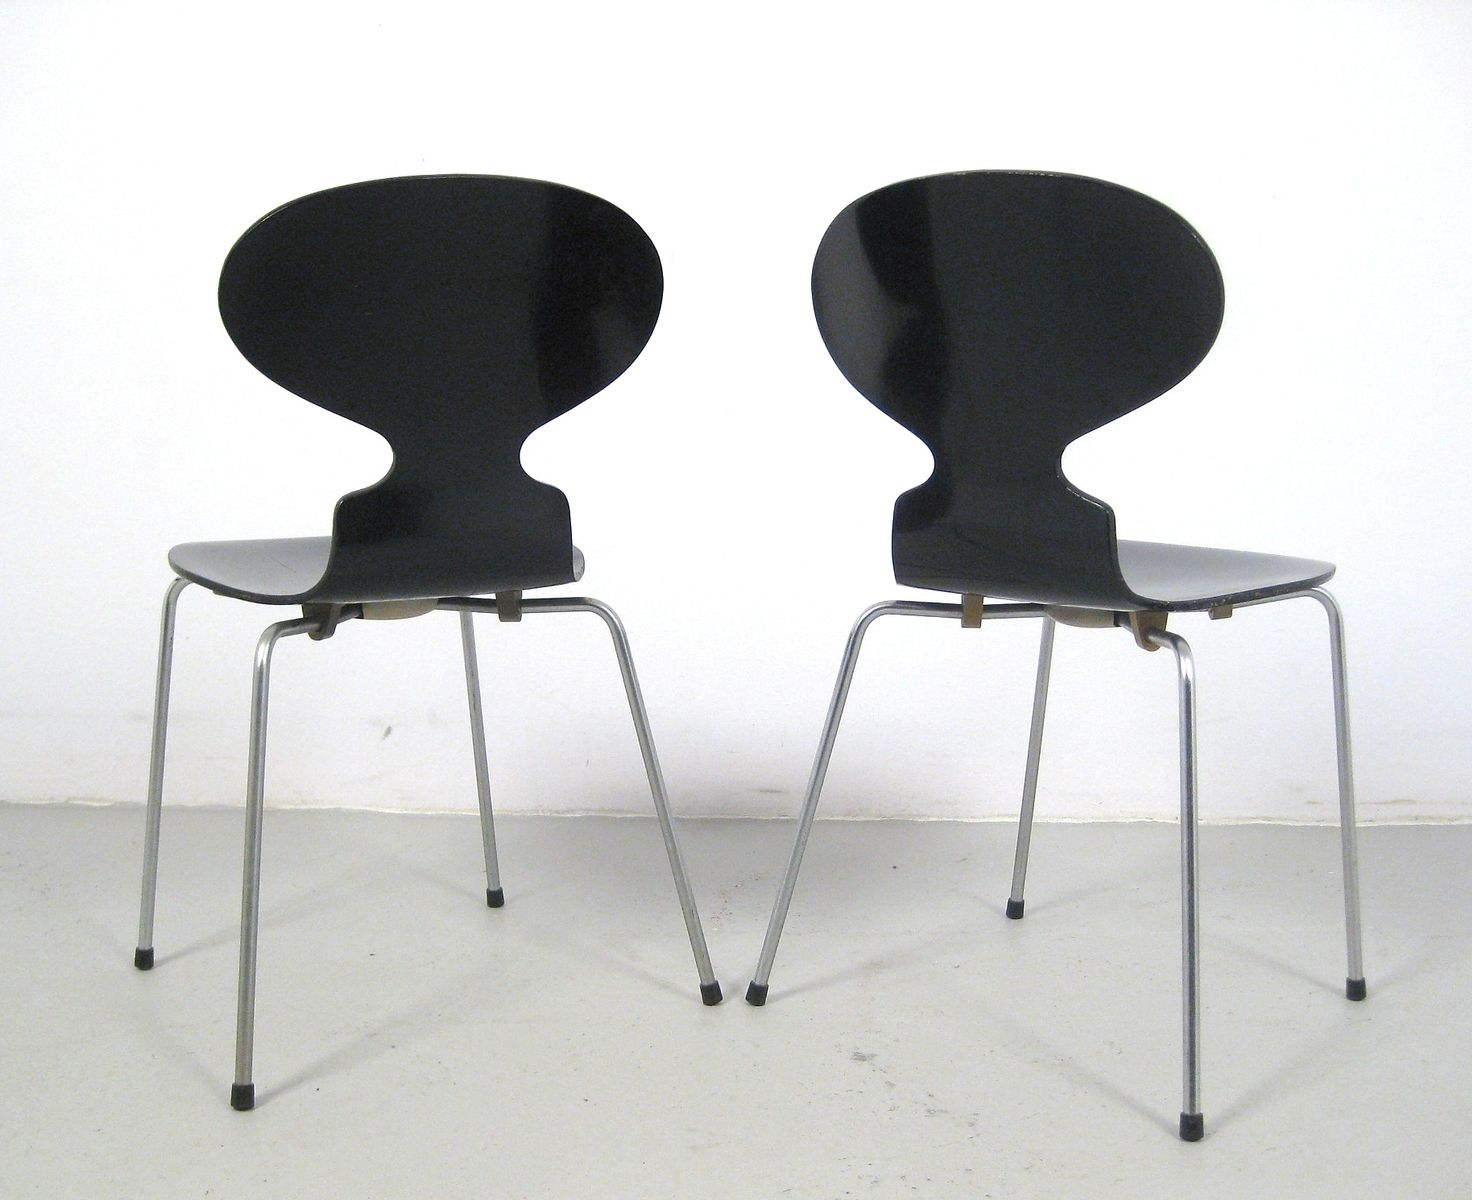 3101 st hle von arne jacobsen f r fritz hansen 1988 4er set bei pamono kaufen. Black Bedroom Furniture Sets. Home Design Ideas